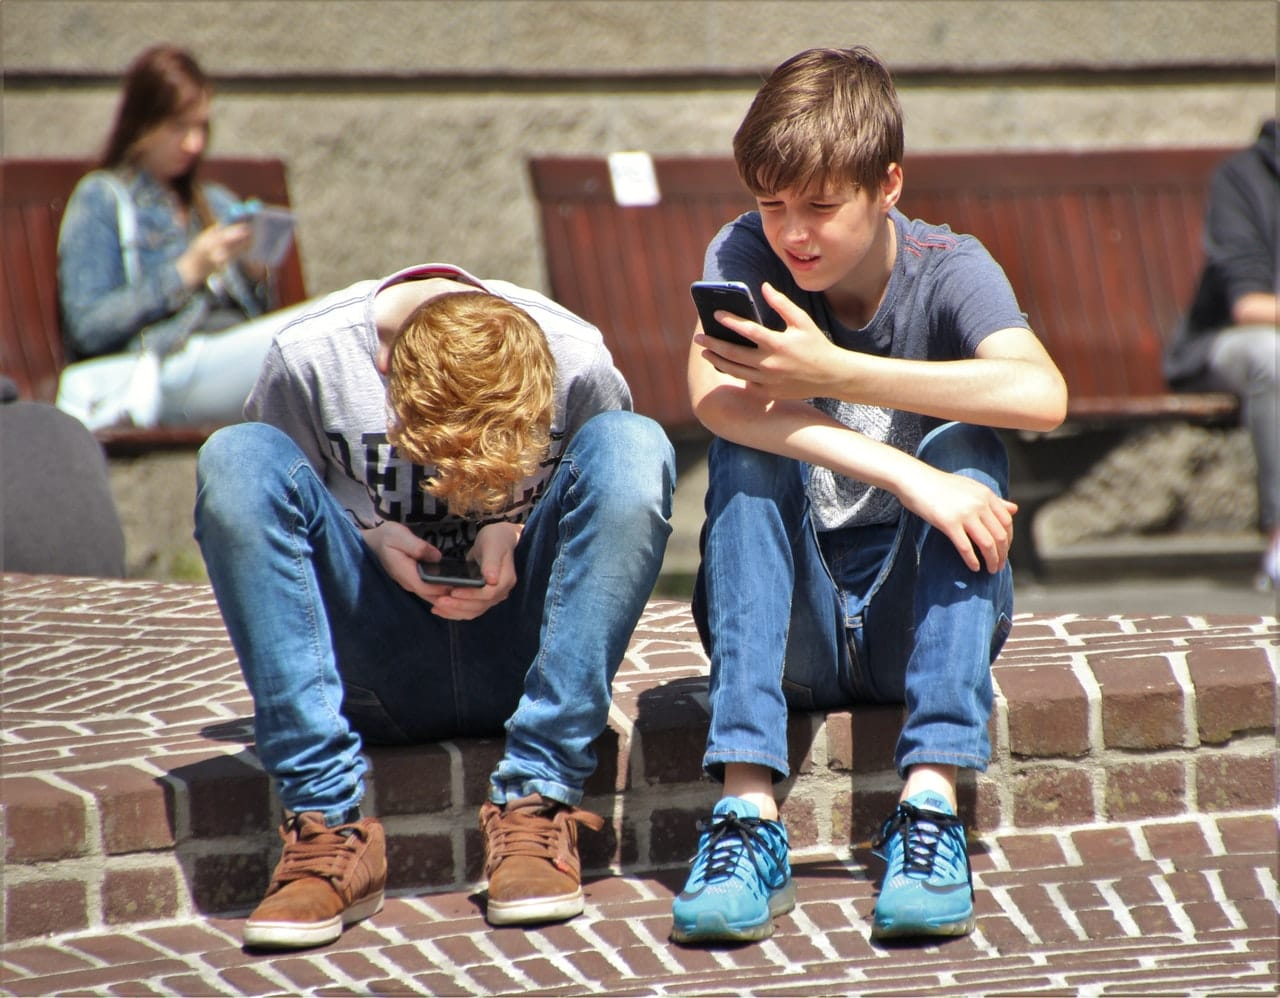 Children on mobile devices